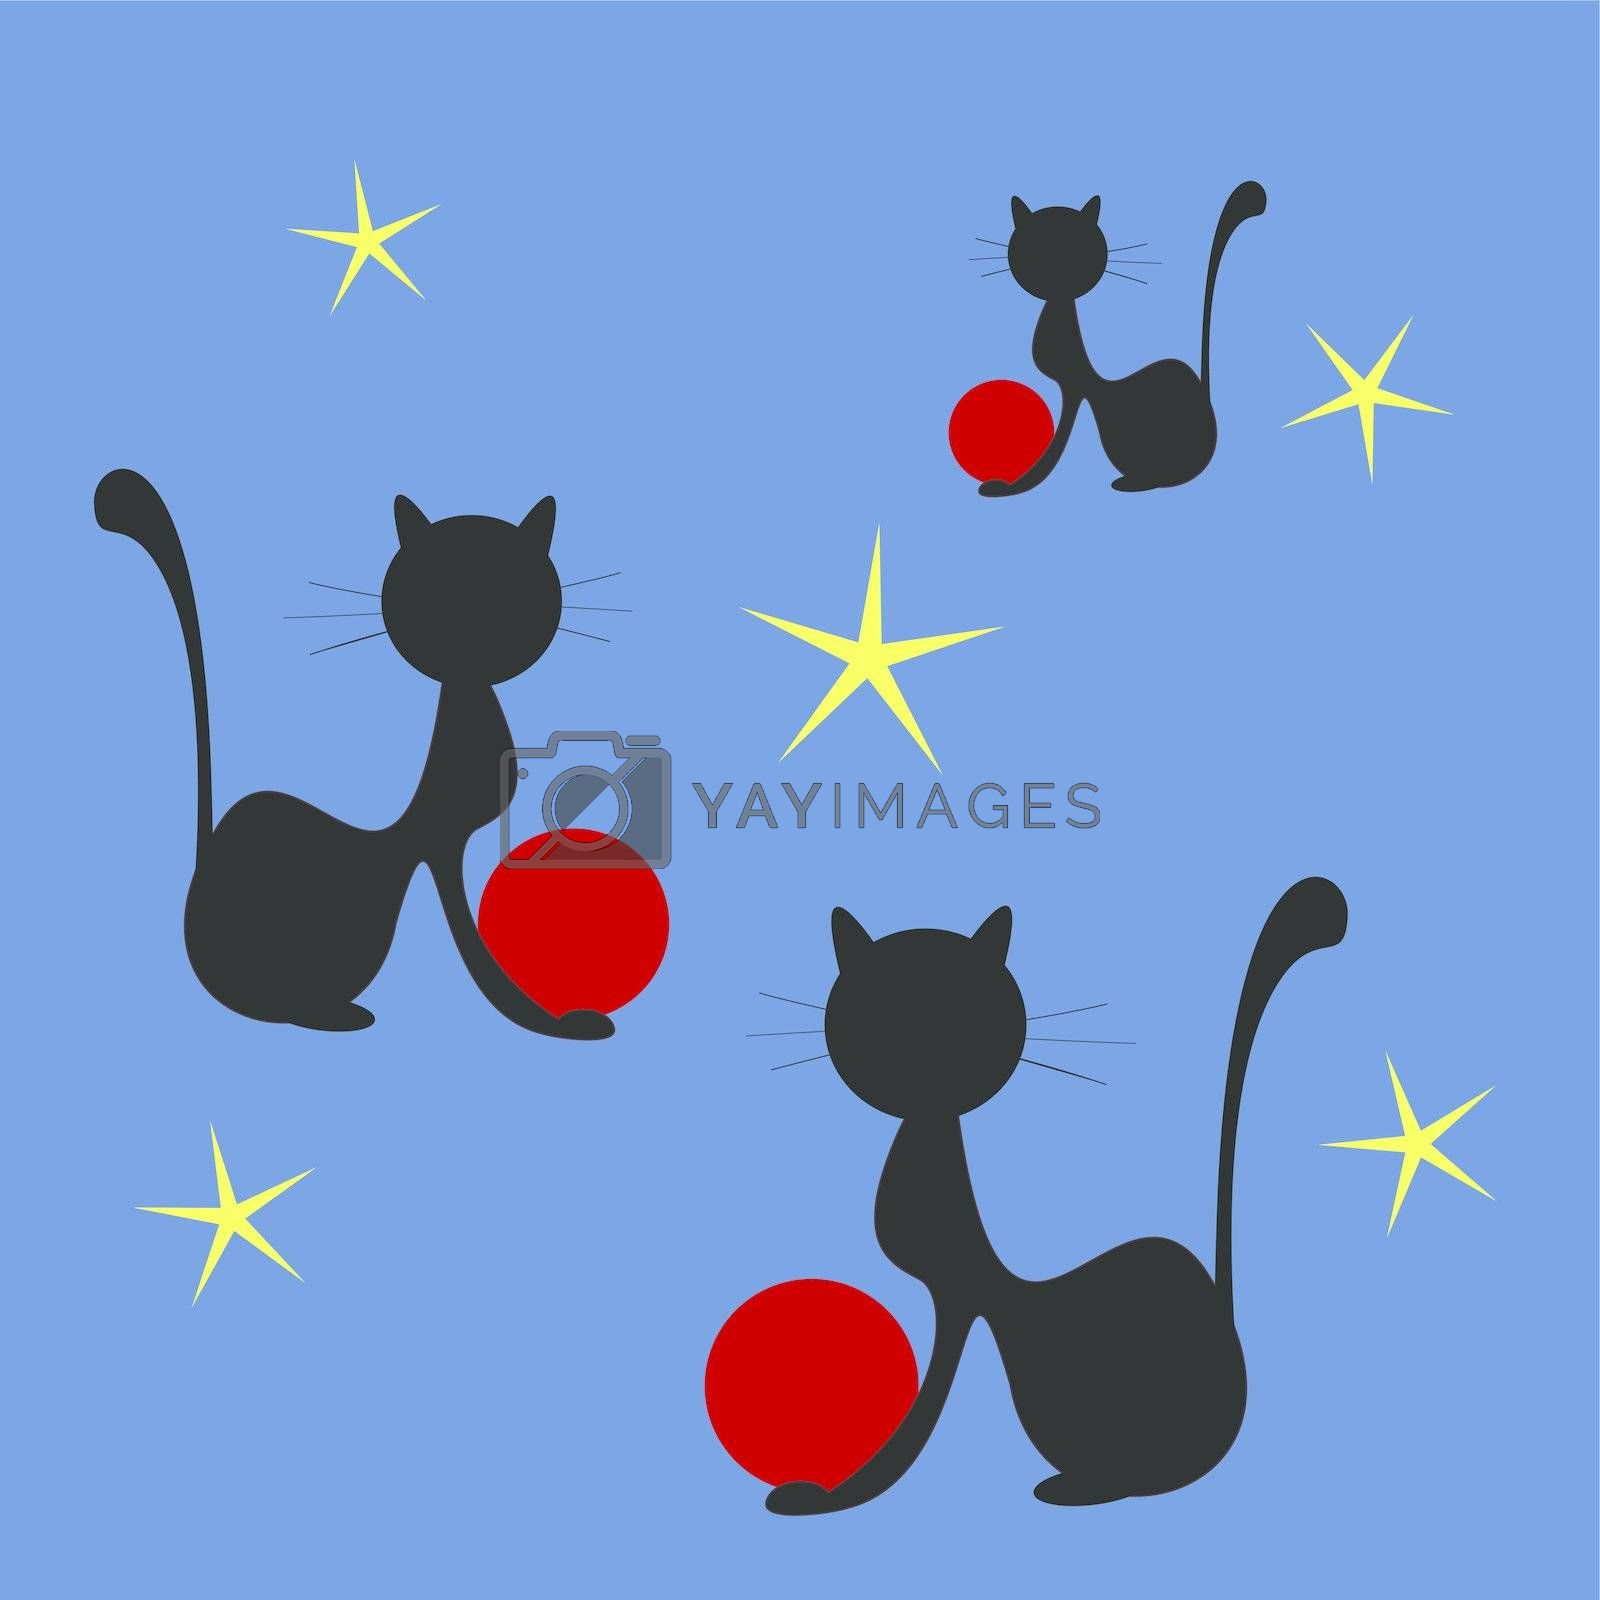 Shapes of black cats playing with red balls on dark blue background with yellow stars